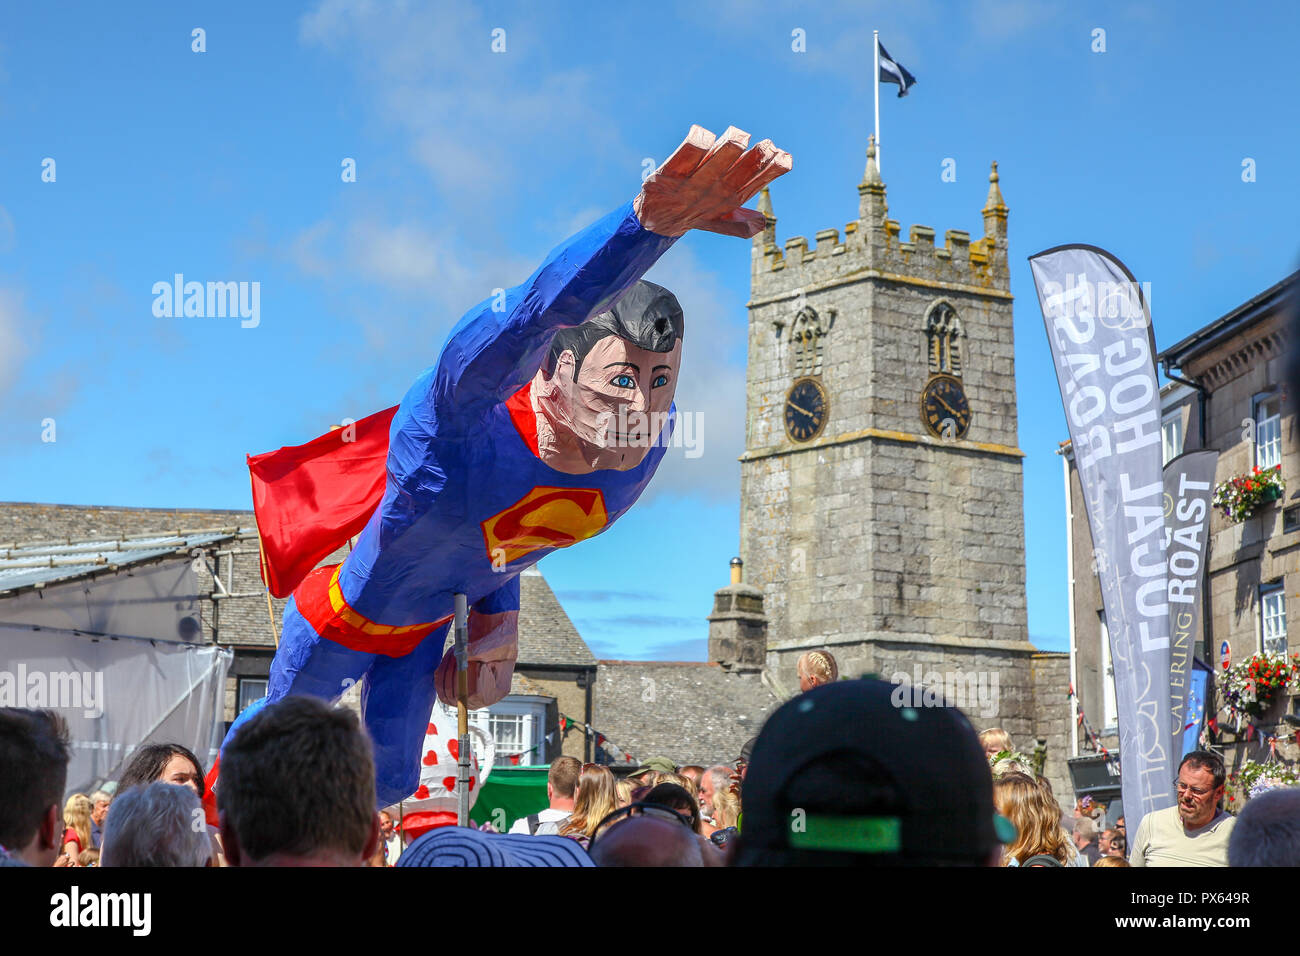 A papier mache model of superman at the Lafrowda festival at St. Just in Penwith, Cornwall, England, UK - Stock Image